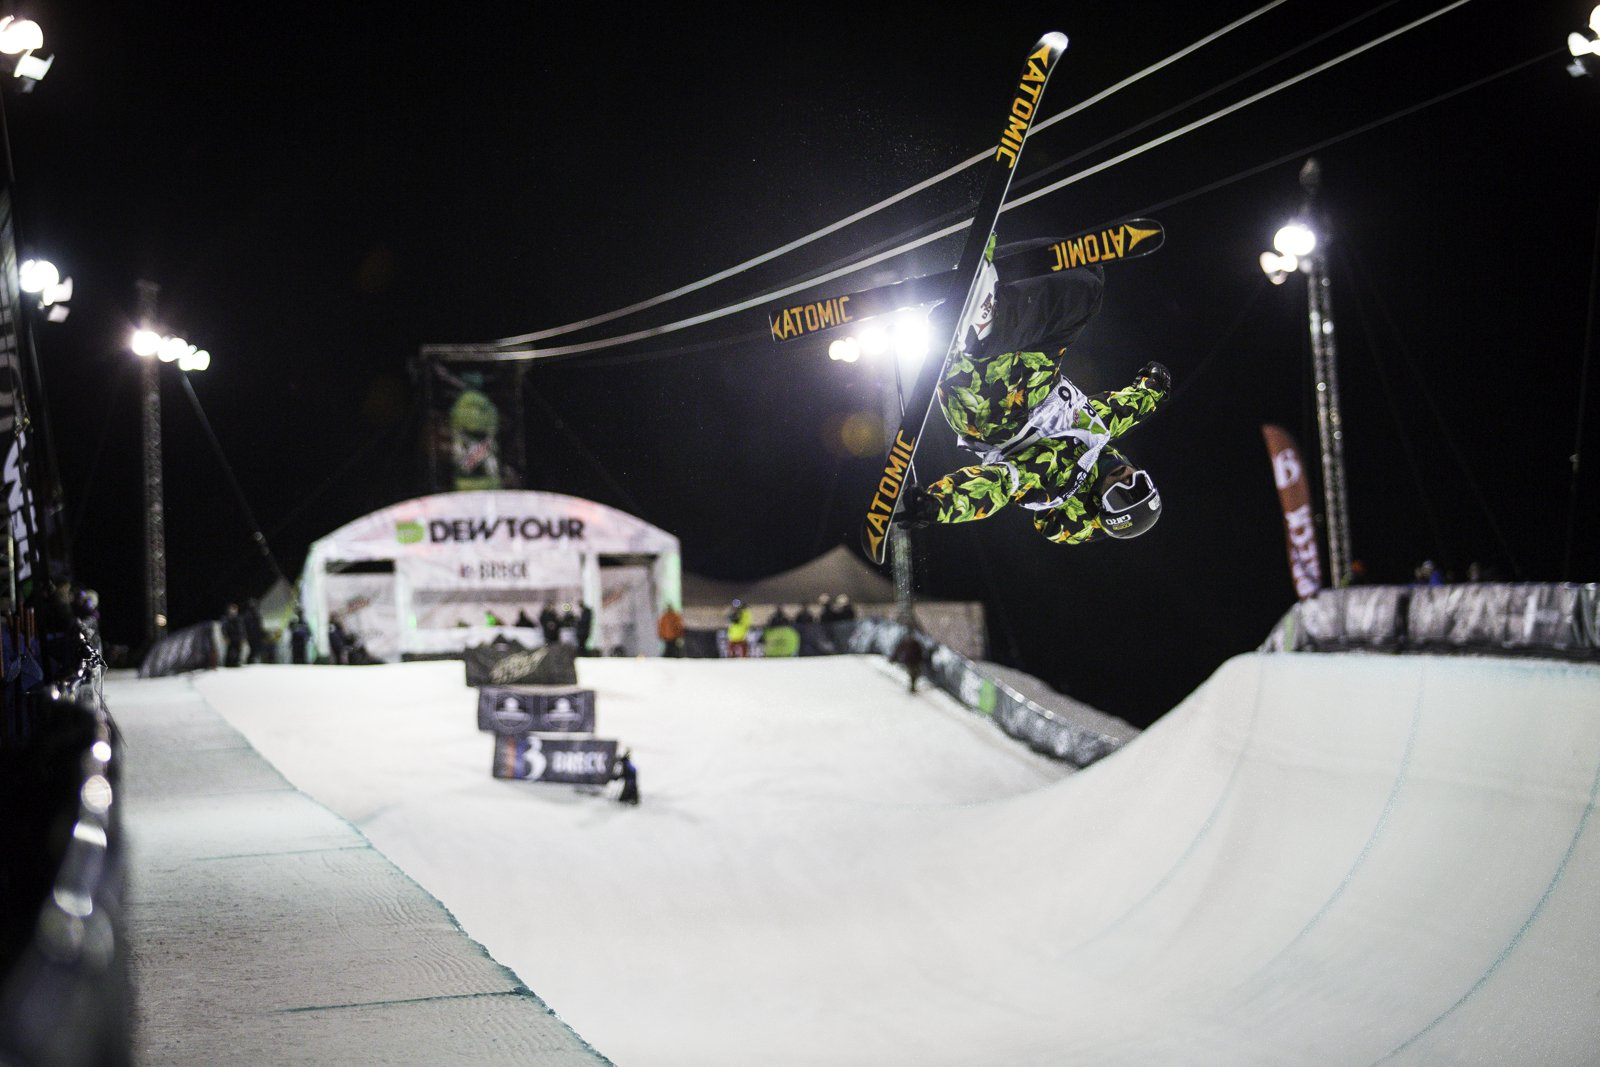 Dew Tour 2013 Ski Superpipe